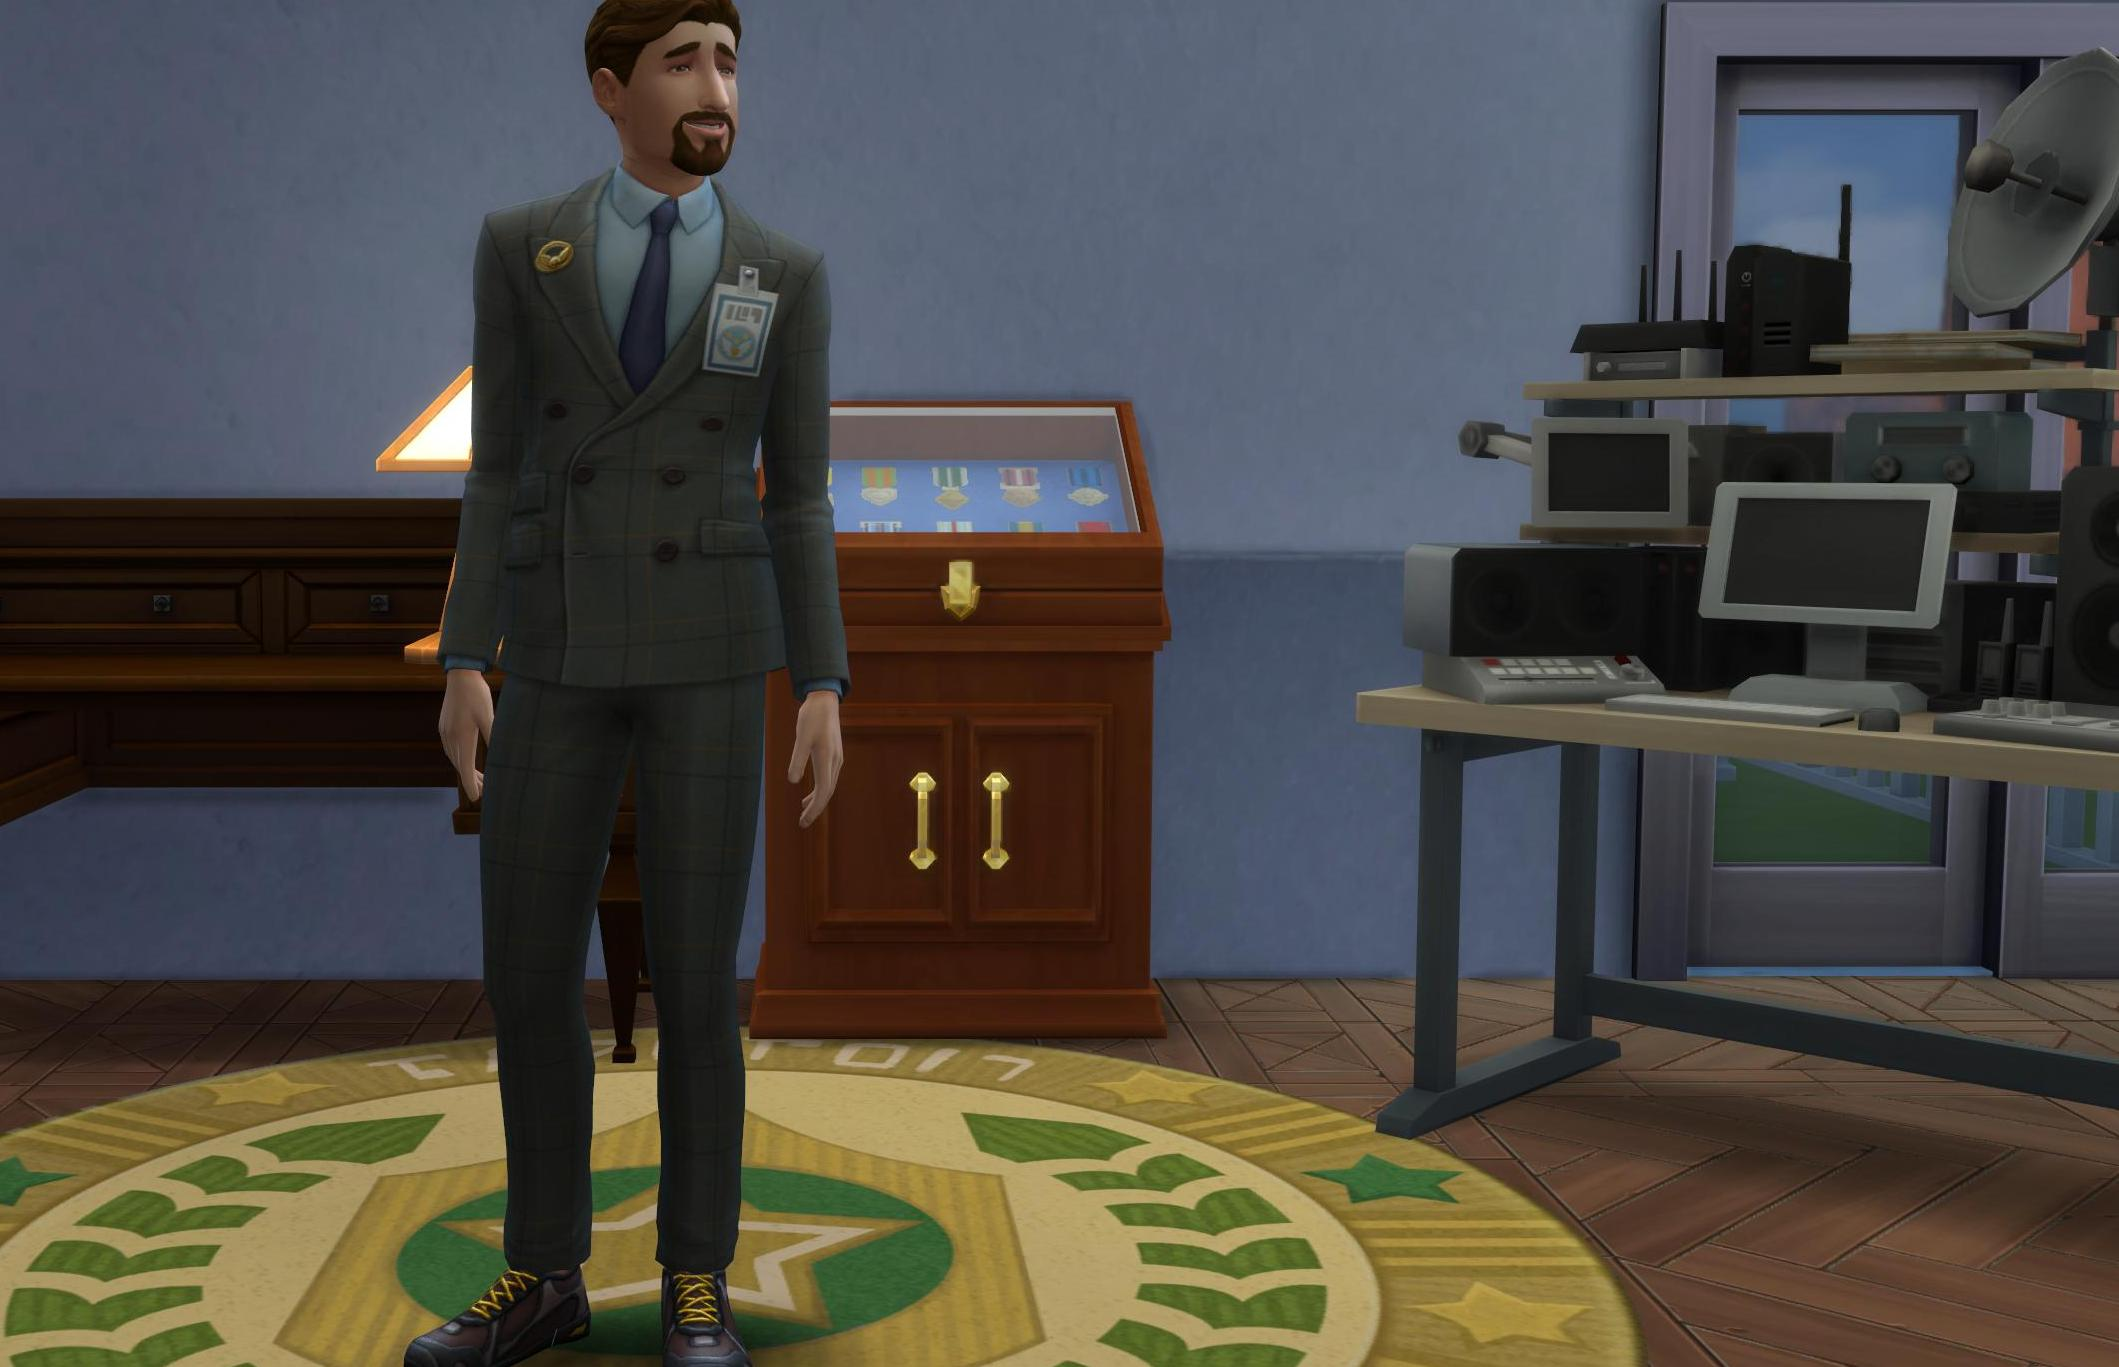 Military Covert Operator Rewards in The Sims 4 StrangerVille Game Pack